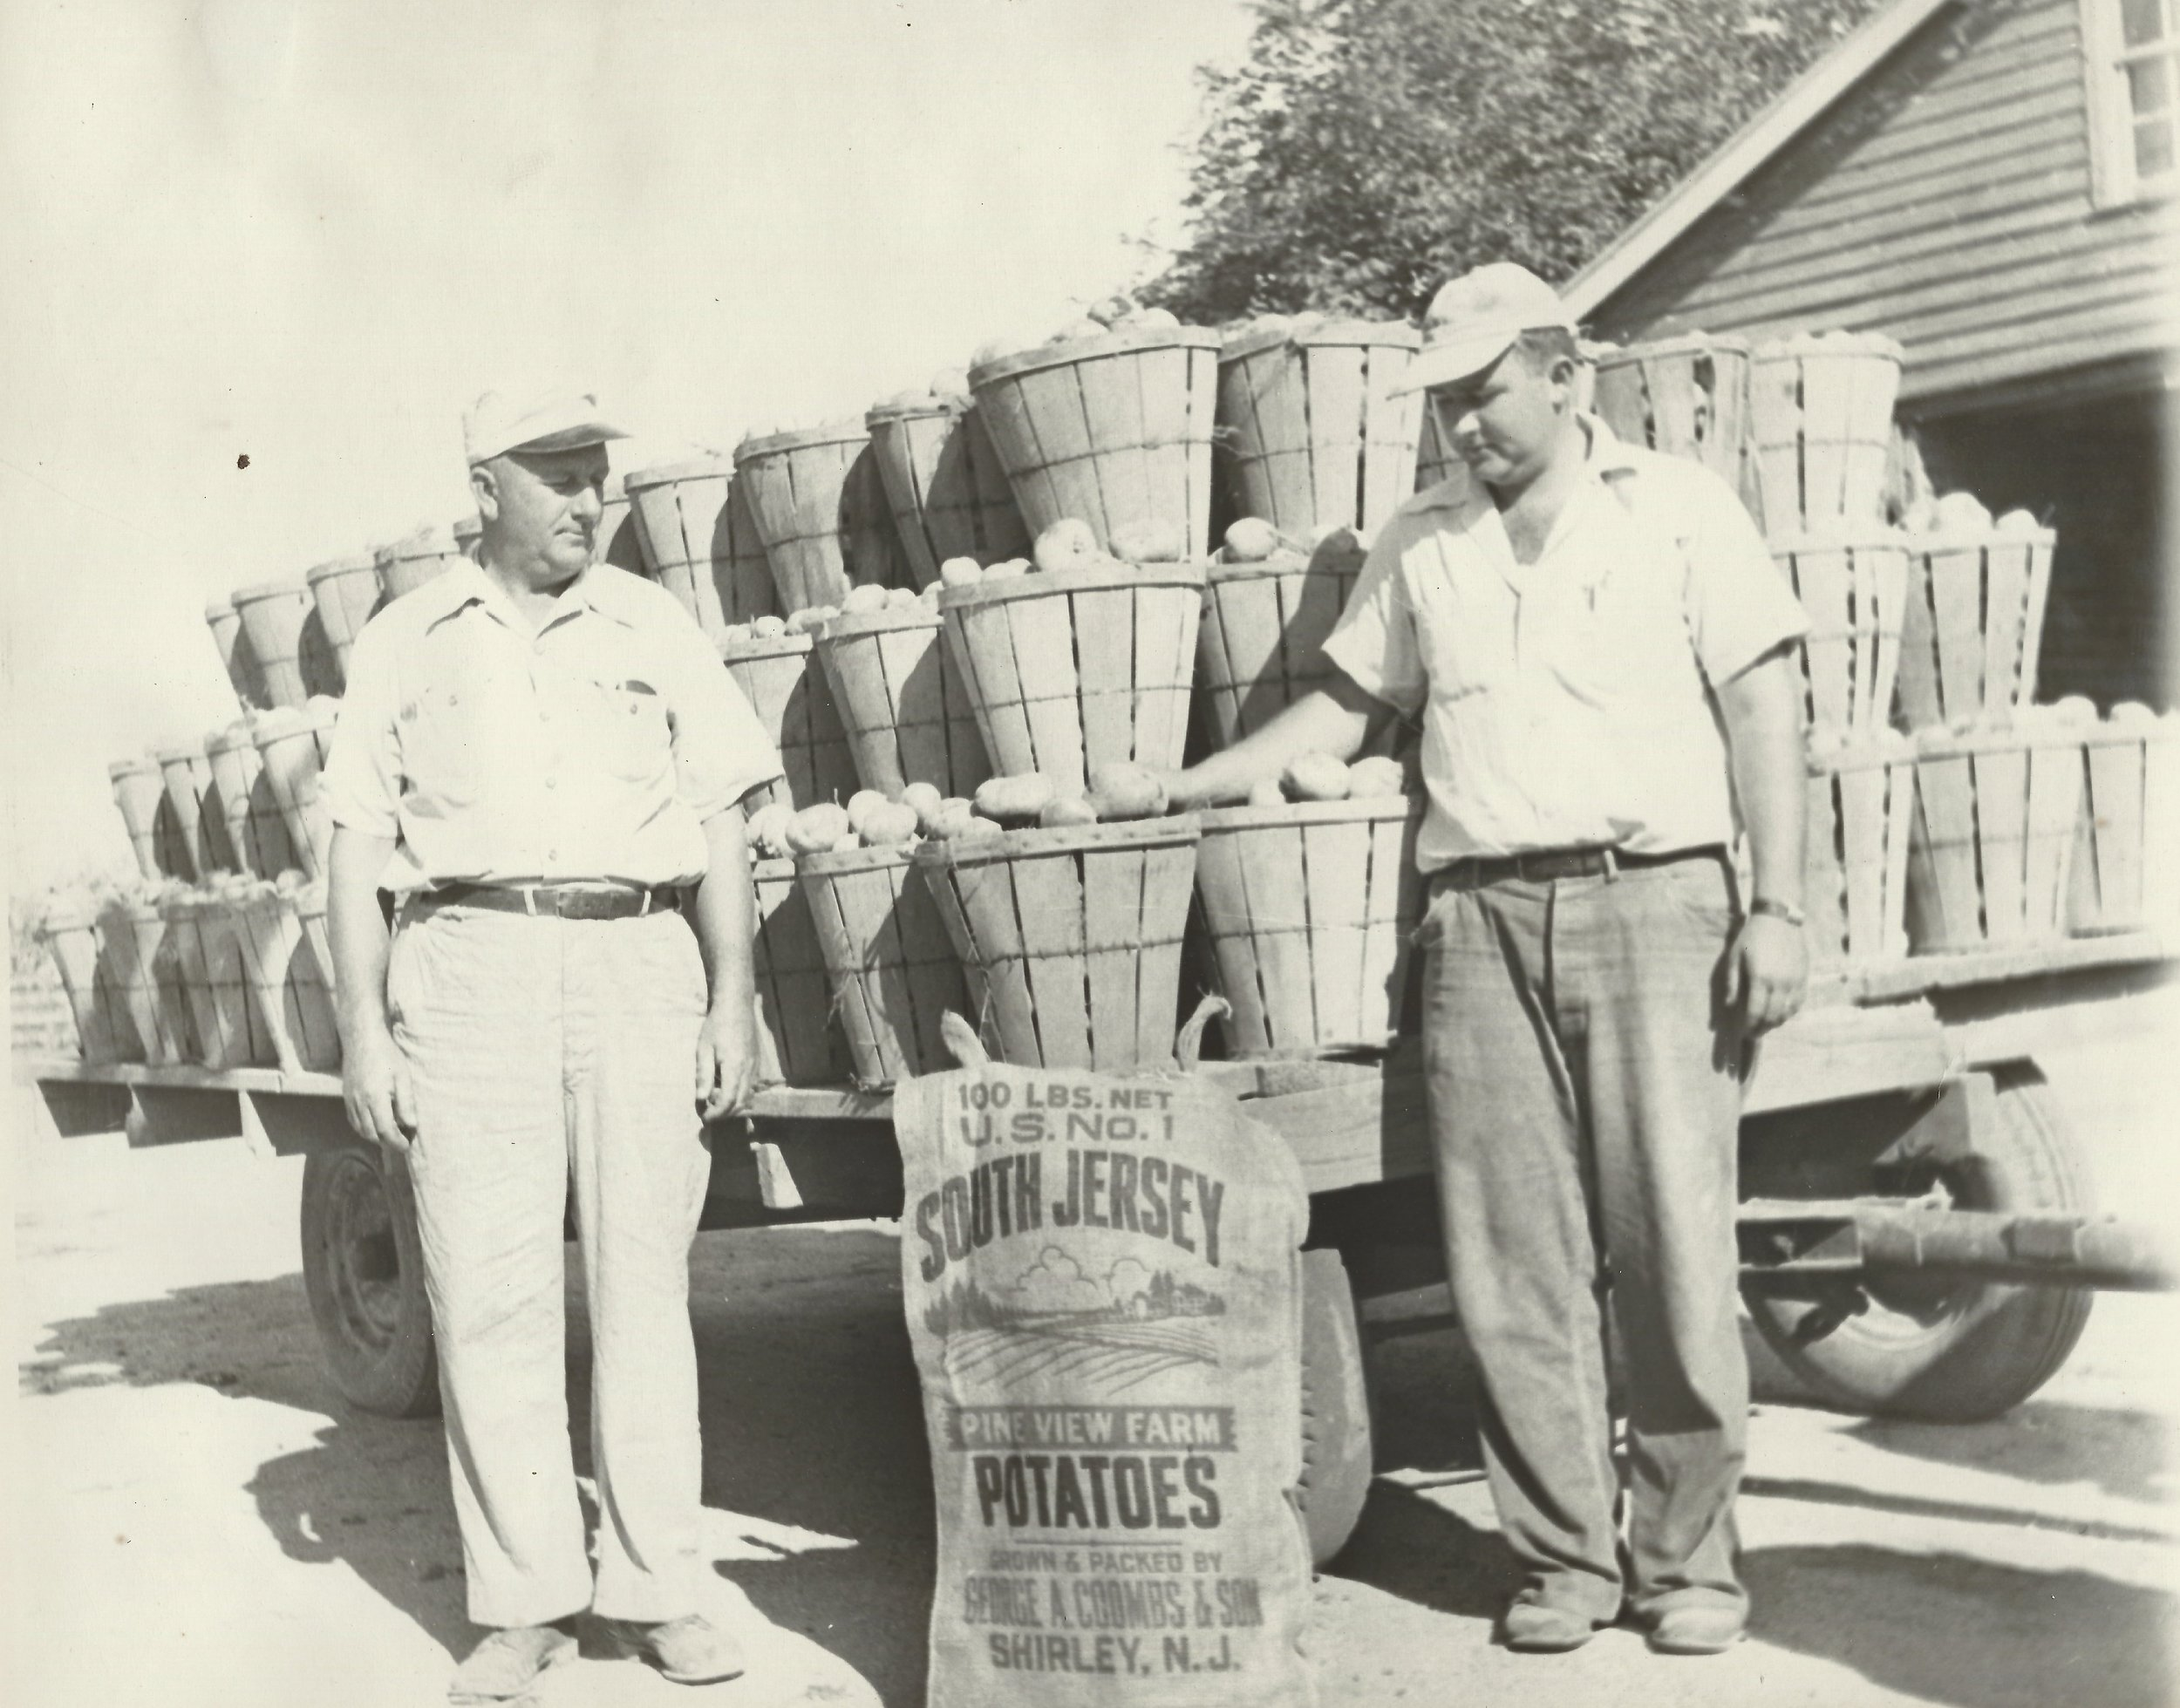 George A. Coombs Sr. and George Jr. in front of wagon loaded with potatoes in 1950s